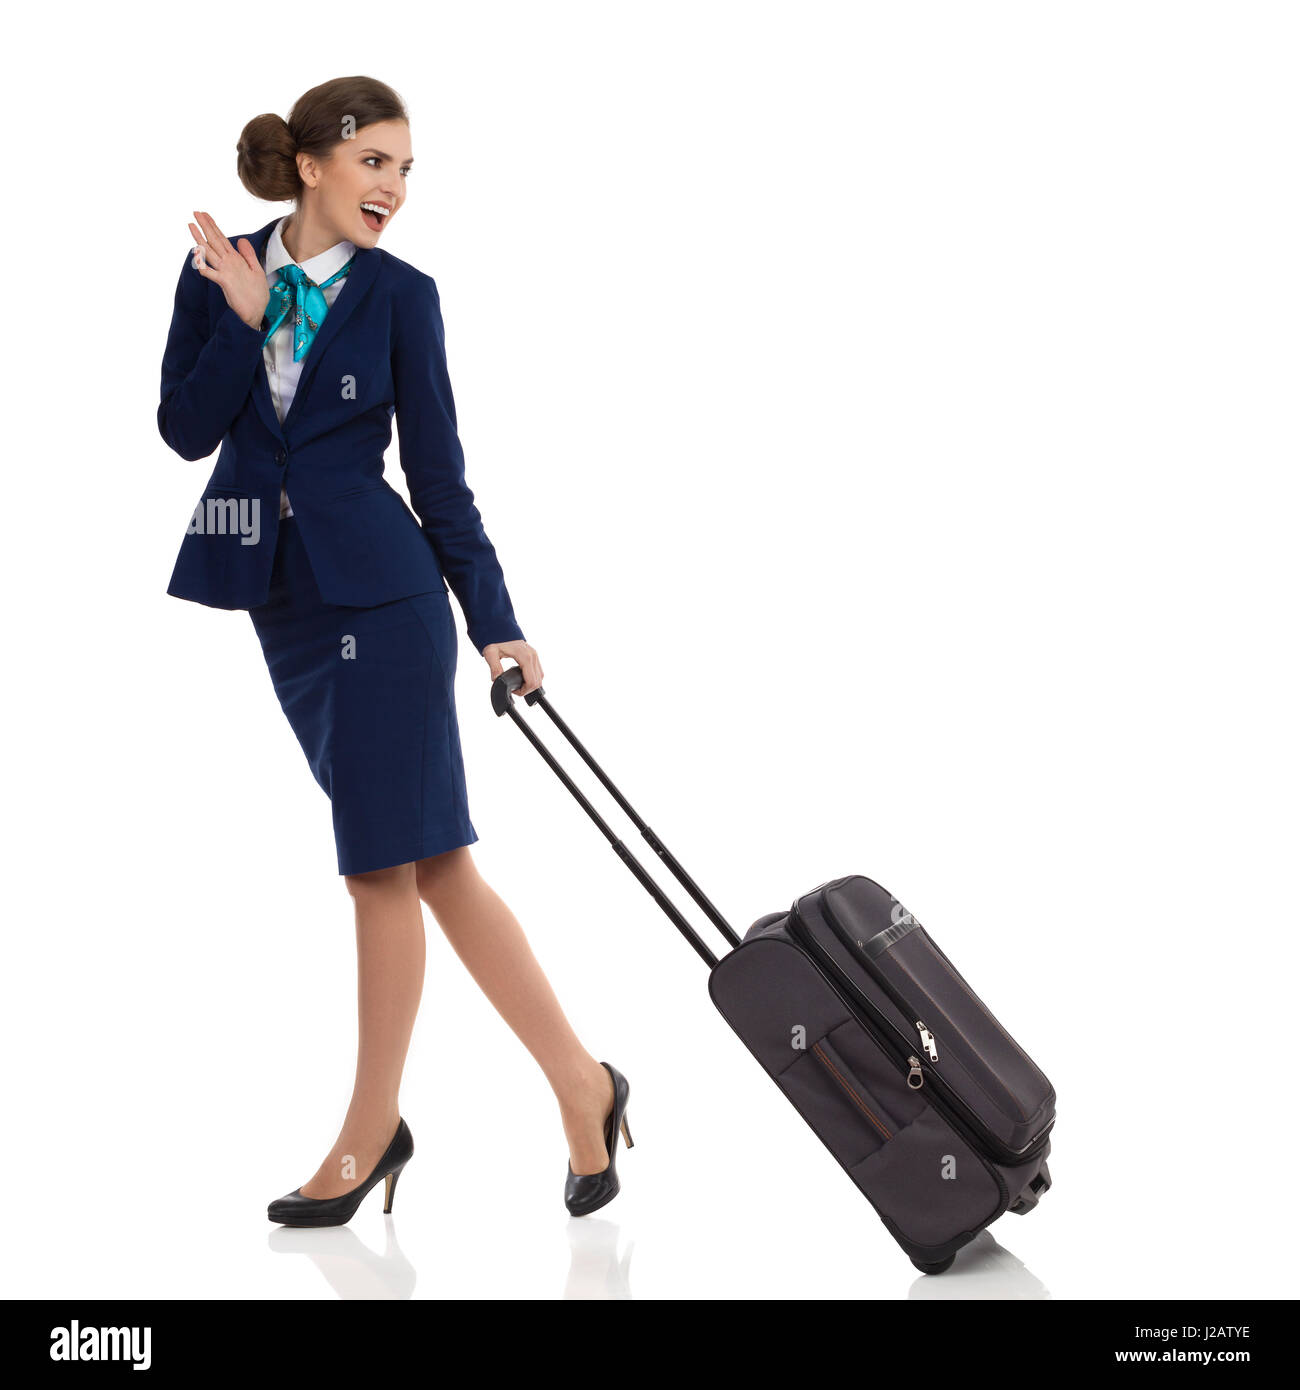 Smiling woman in blue suit and skirt is walking with trolley bag, looking back over shoulder and waving. Side view. - Stock Image